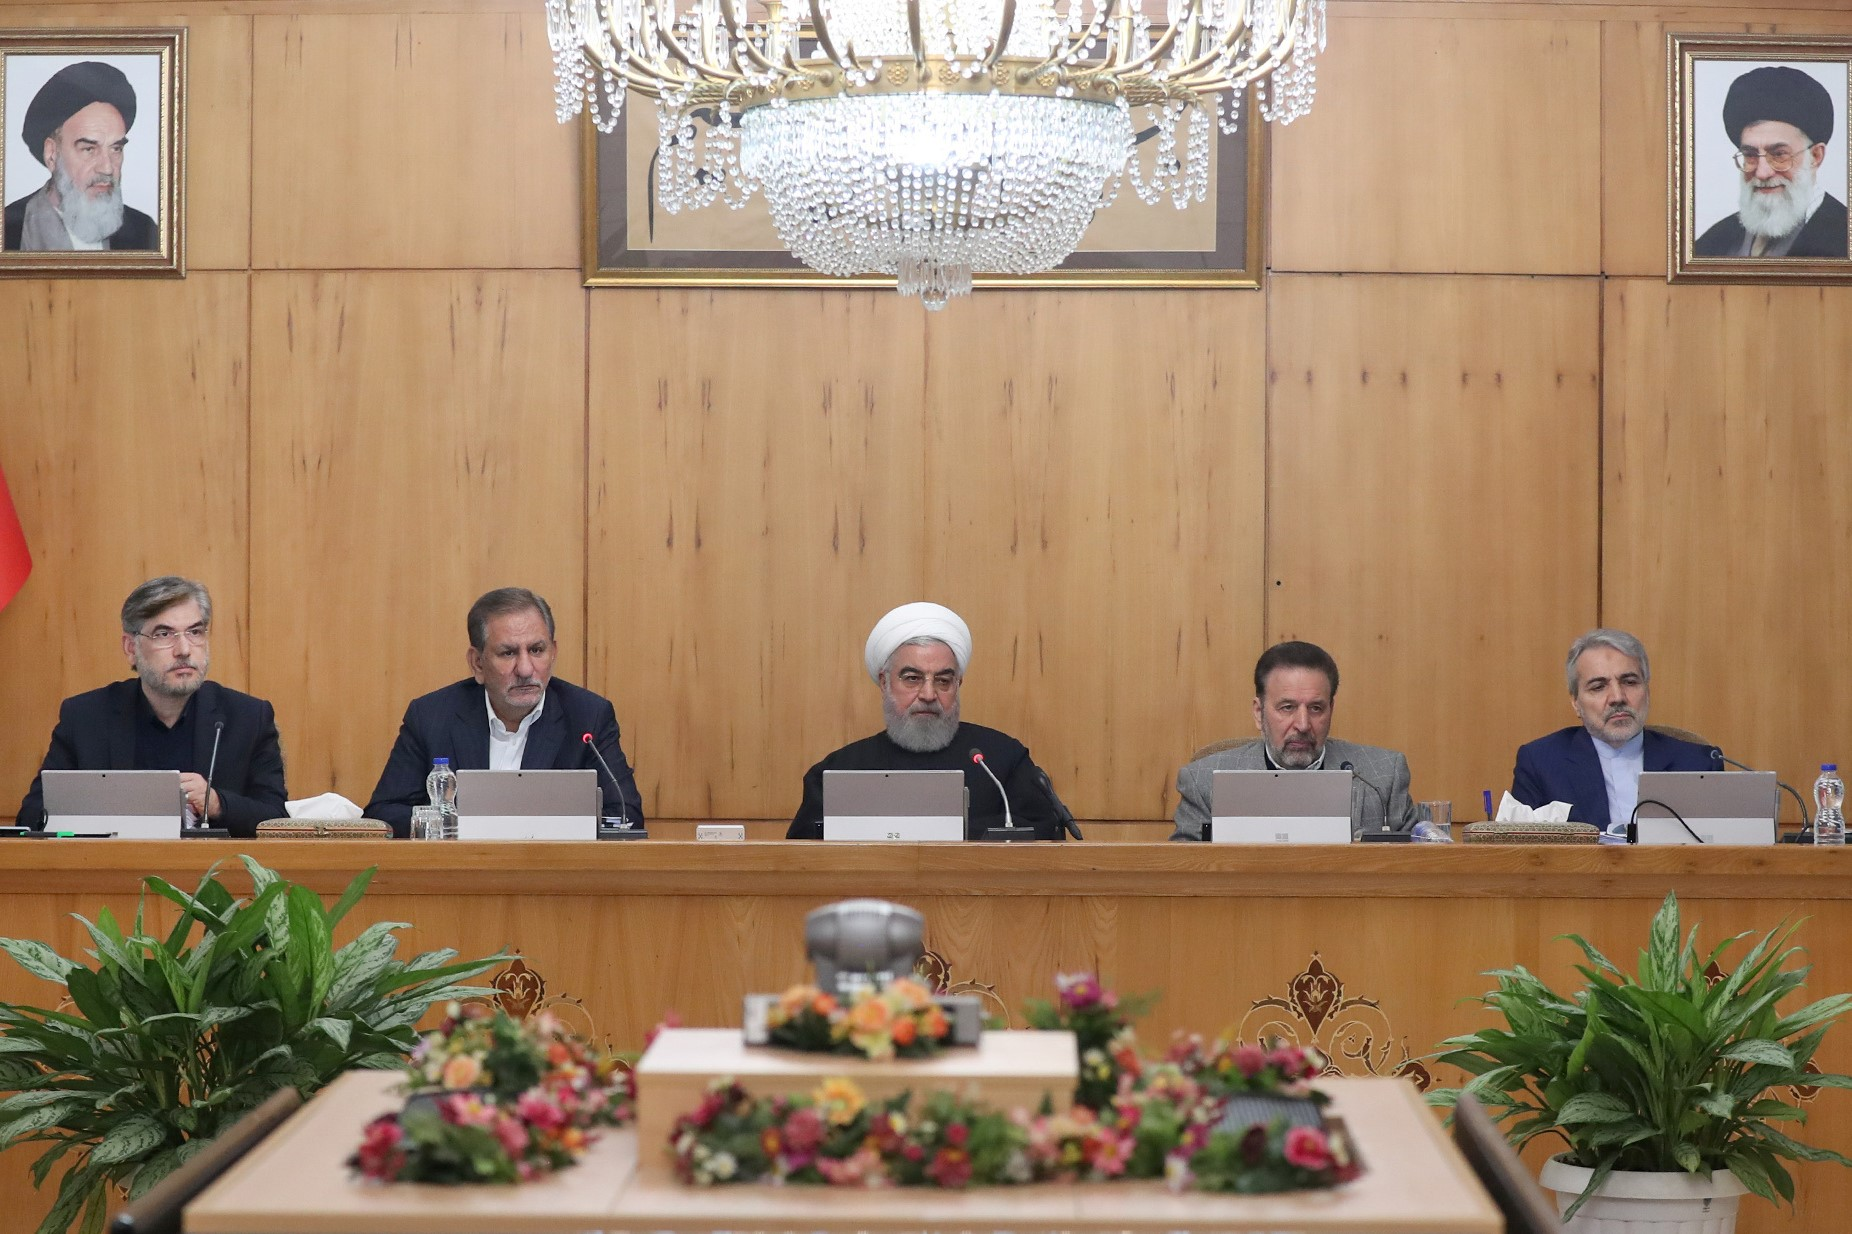 Iranian President Hassan Rouhani speaks during the cabinet meeting in Tehran, Iran, November 20, 2019